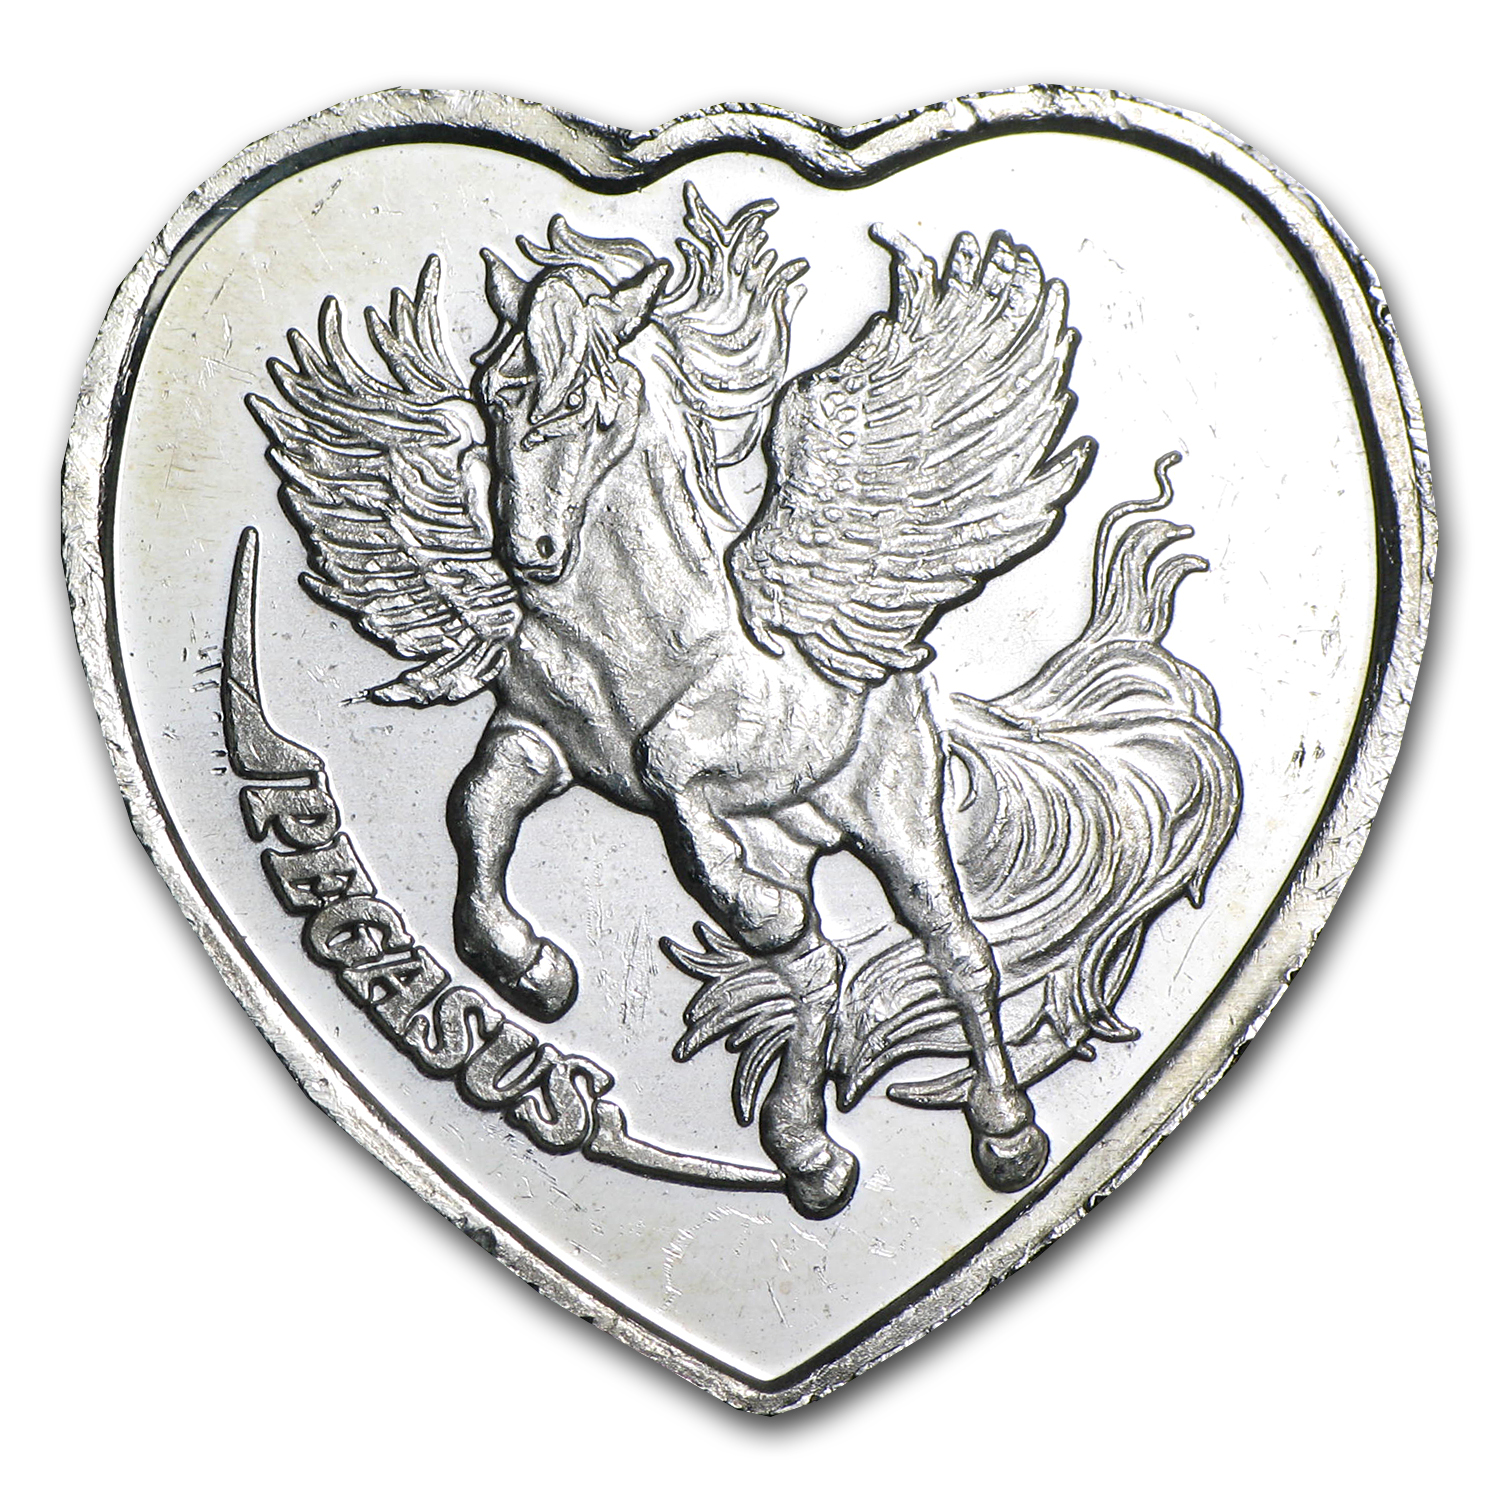 1/4 oz Silver Heart - For Someone Special (Pegasus)